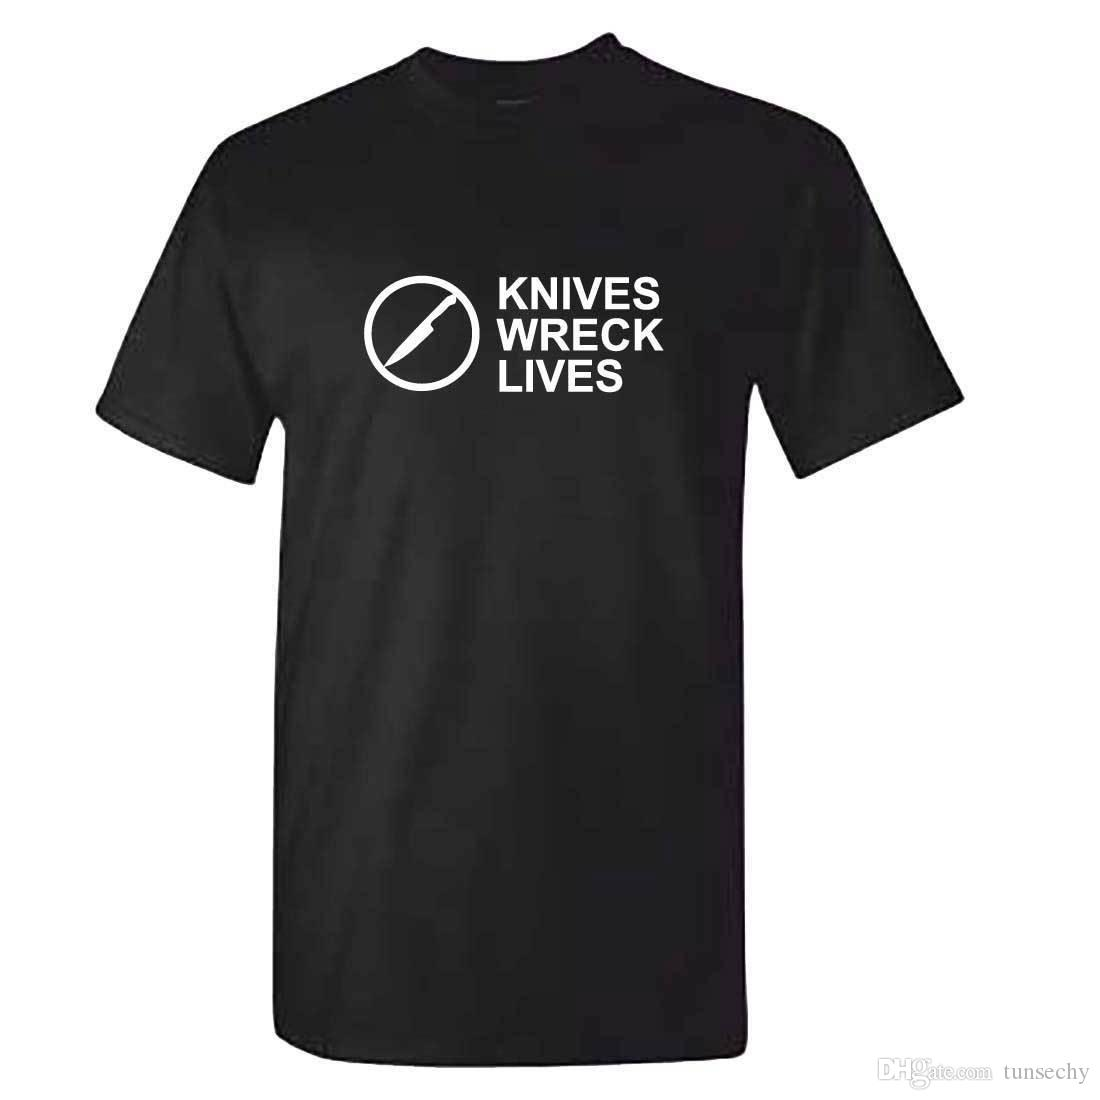 7bcf6b08d02d Unisex KNIVES WRECK LIVES Tshirt Anti Knife Crime / Violence T Shirt  Printed T Shirt Funny T Shirts For Guys From Tunsechy, $11.16  DHgate.Com